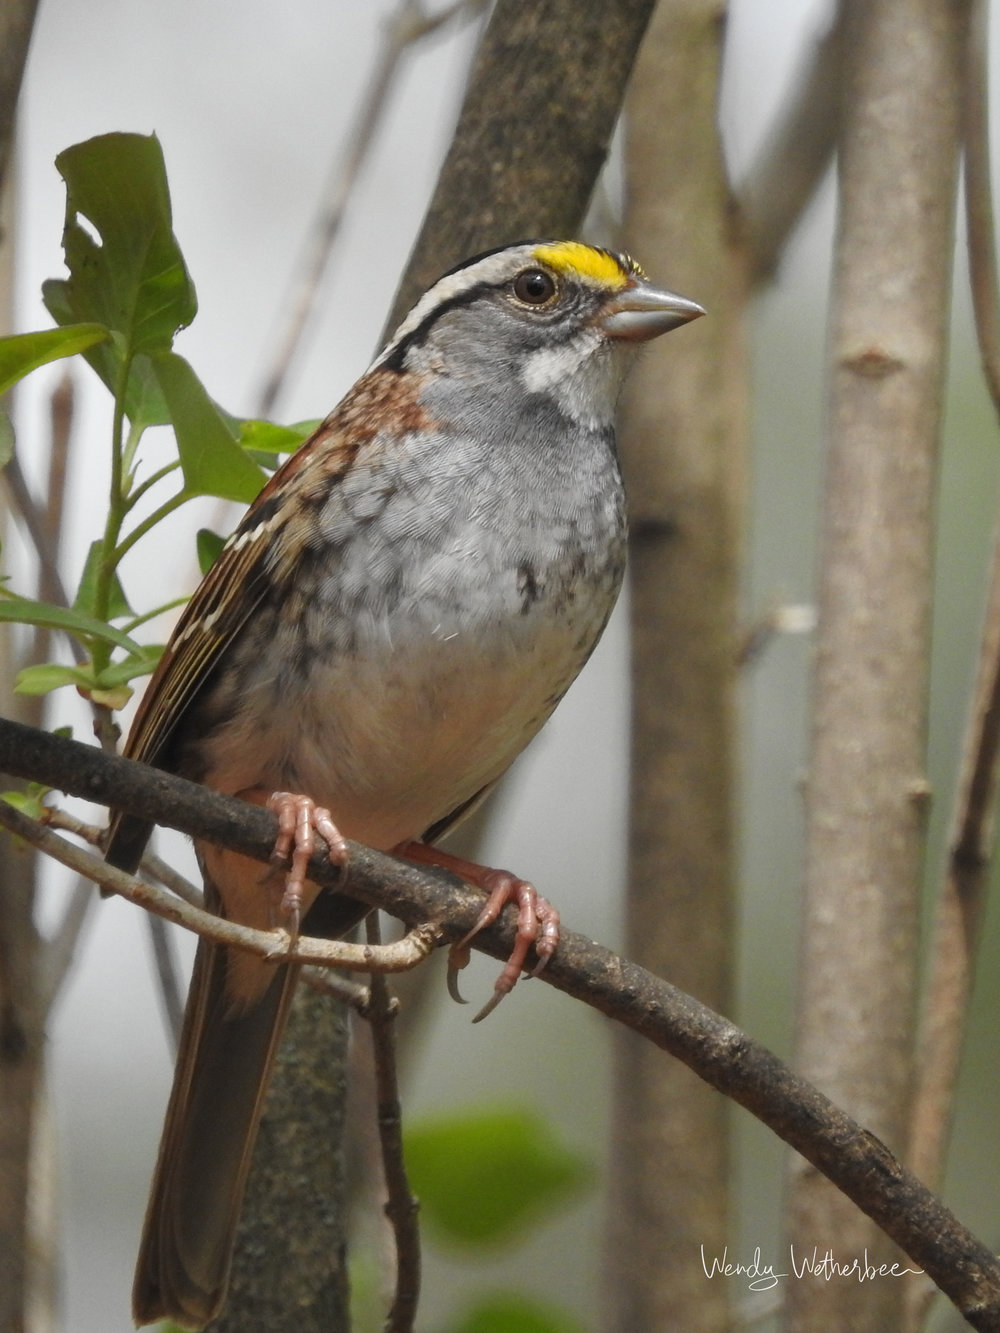 White Throated Sparrow © Wendy Wetherbee